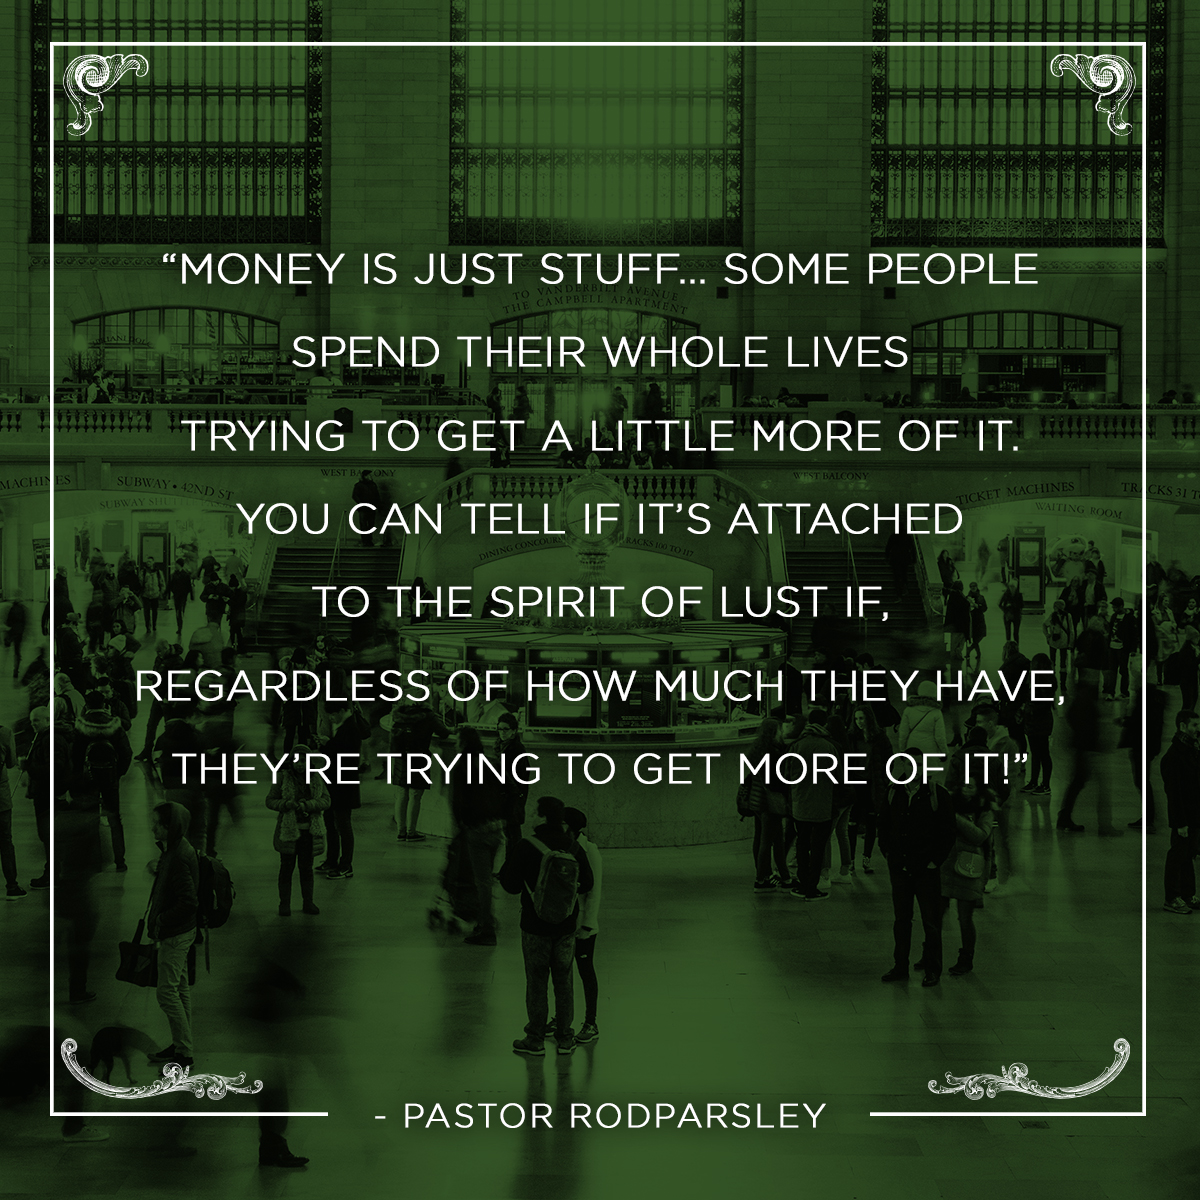 """Money is just stuff… Some people spend their whole lives trying to get a little more of it. You can tell if it's attached to the spirit of lust if, regardless of how much they have, they're trying to get more of it!"" – Pastor Rod Parsley"